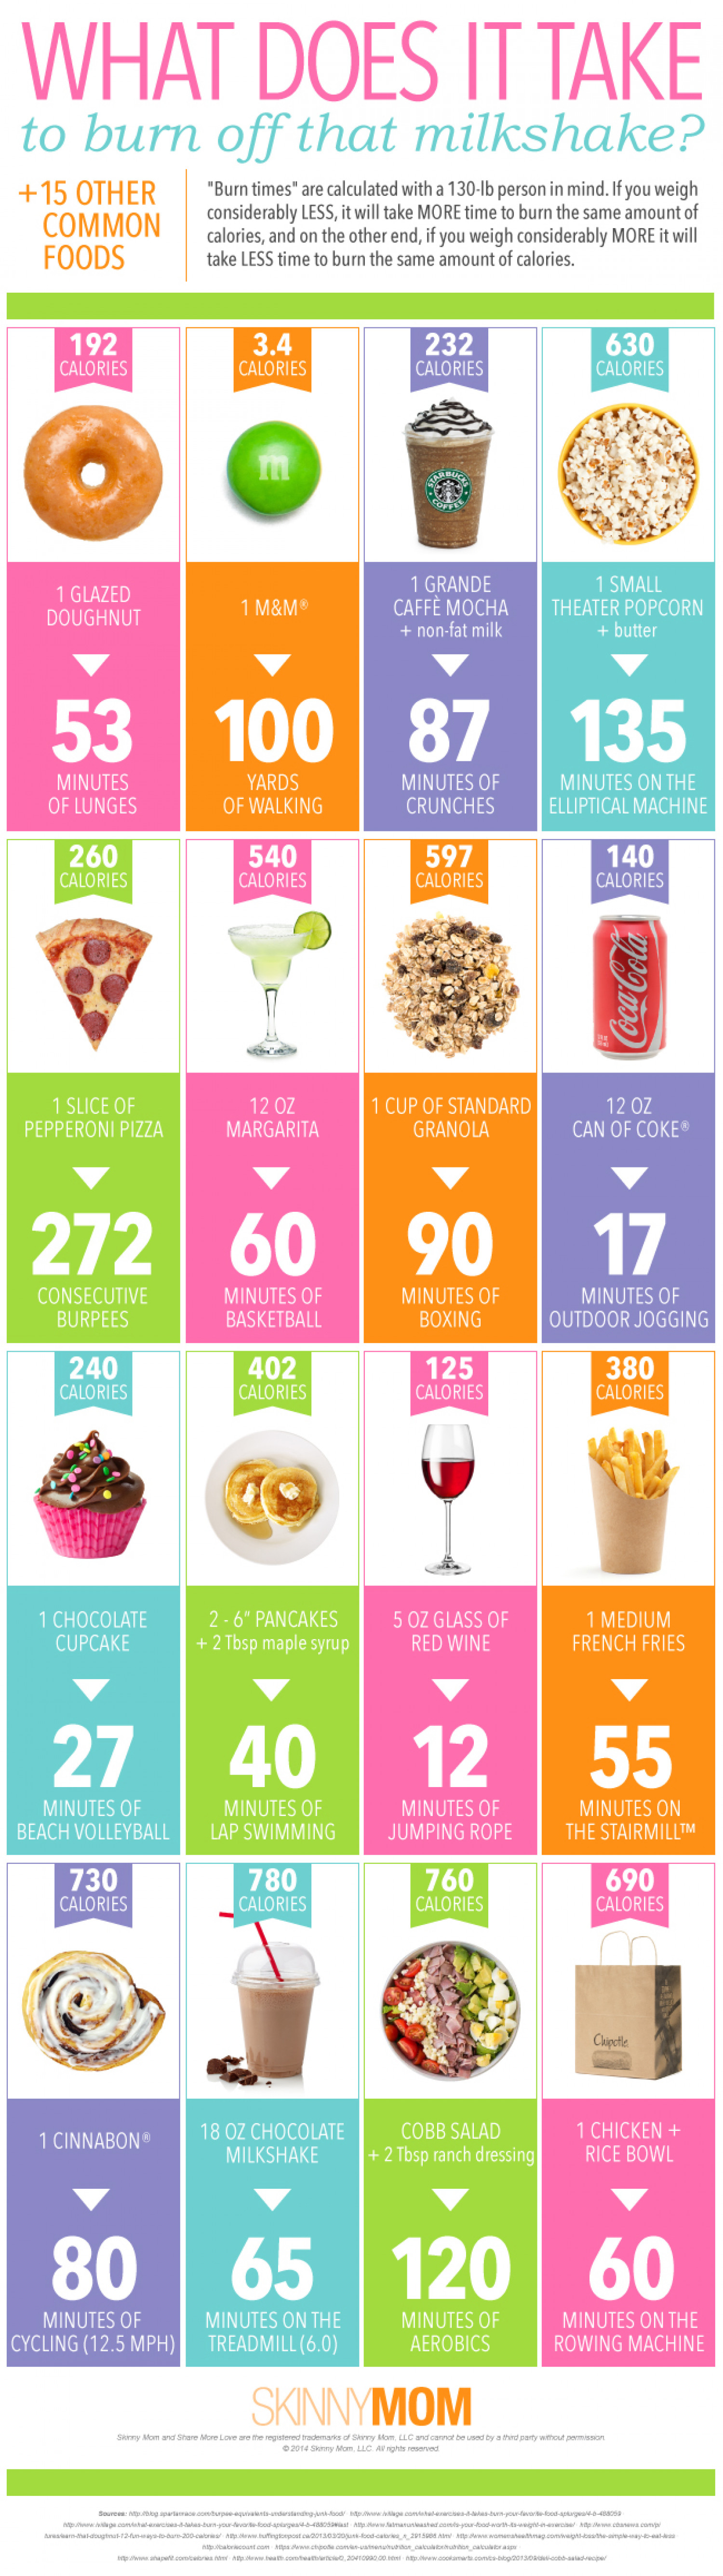 What Does It Take to Burn Off That Milkshake Infographic